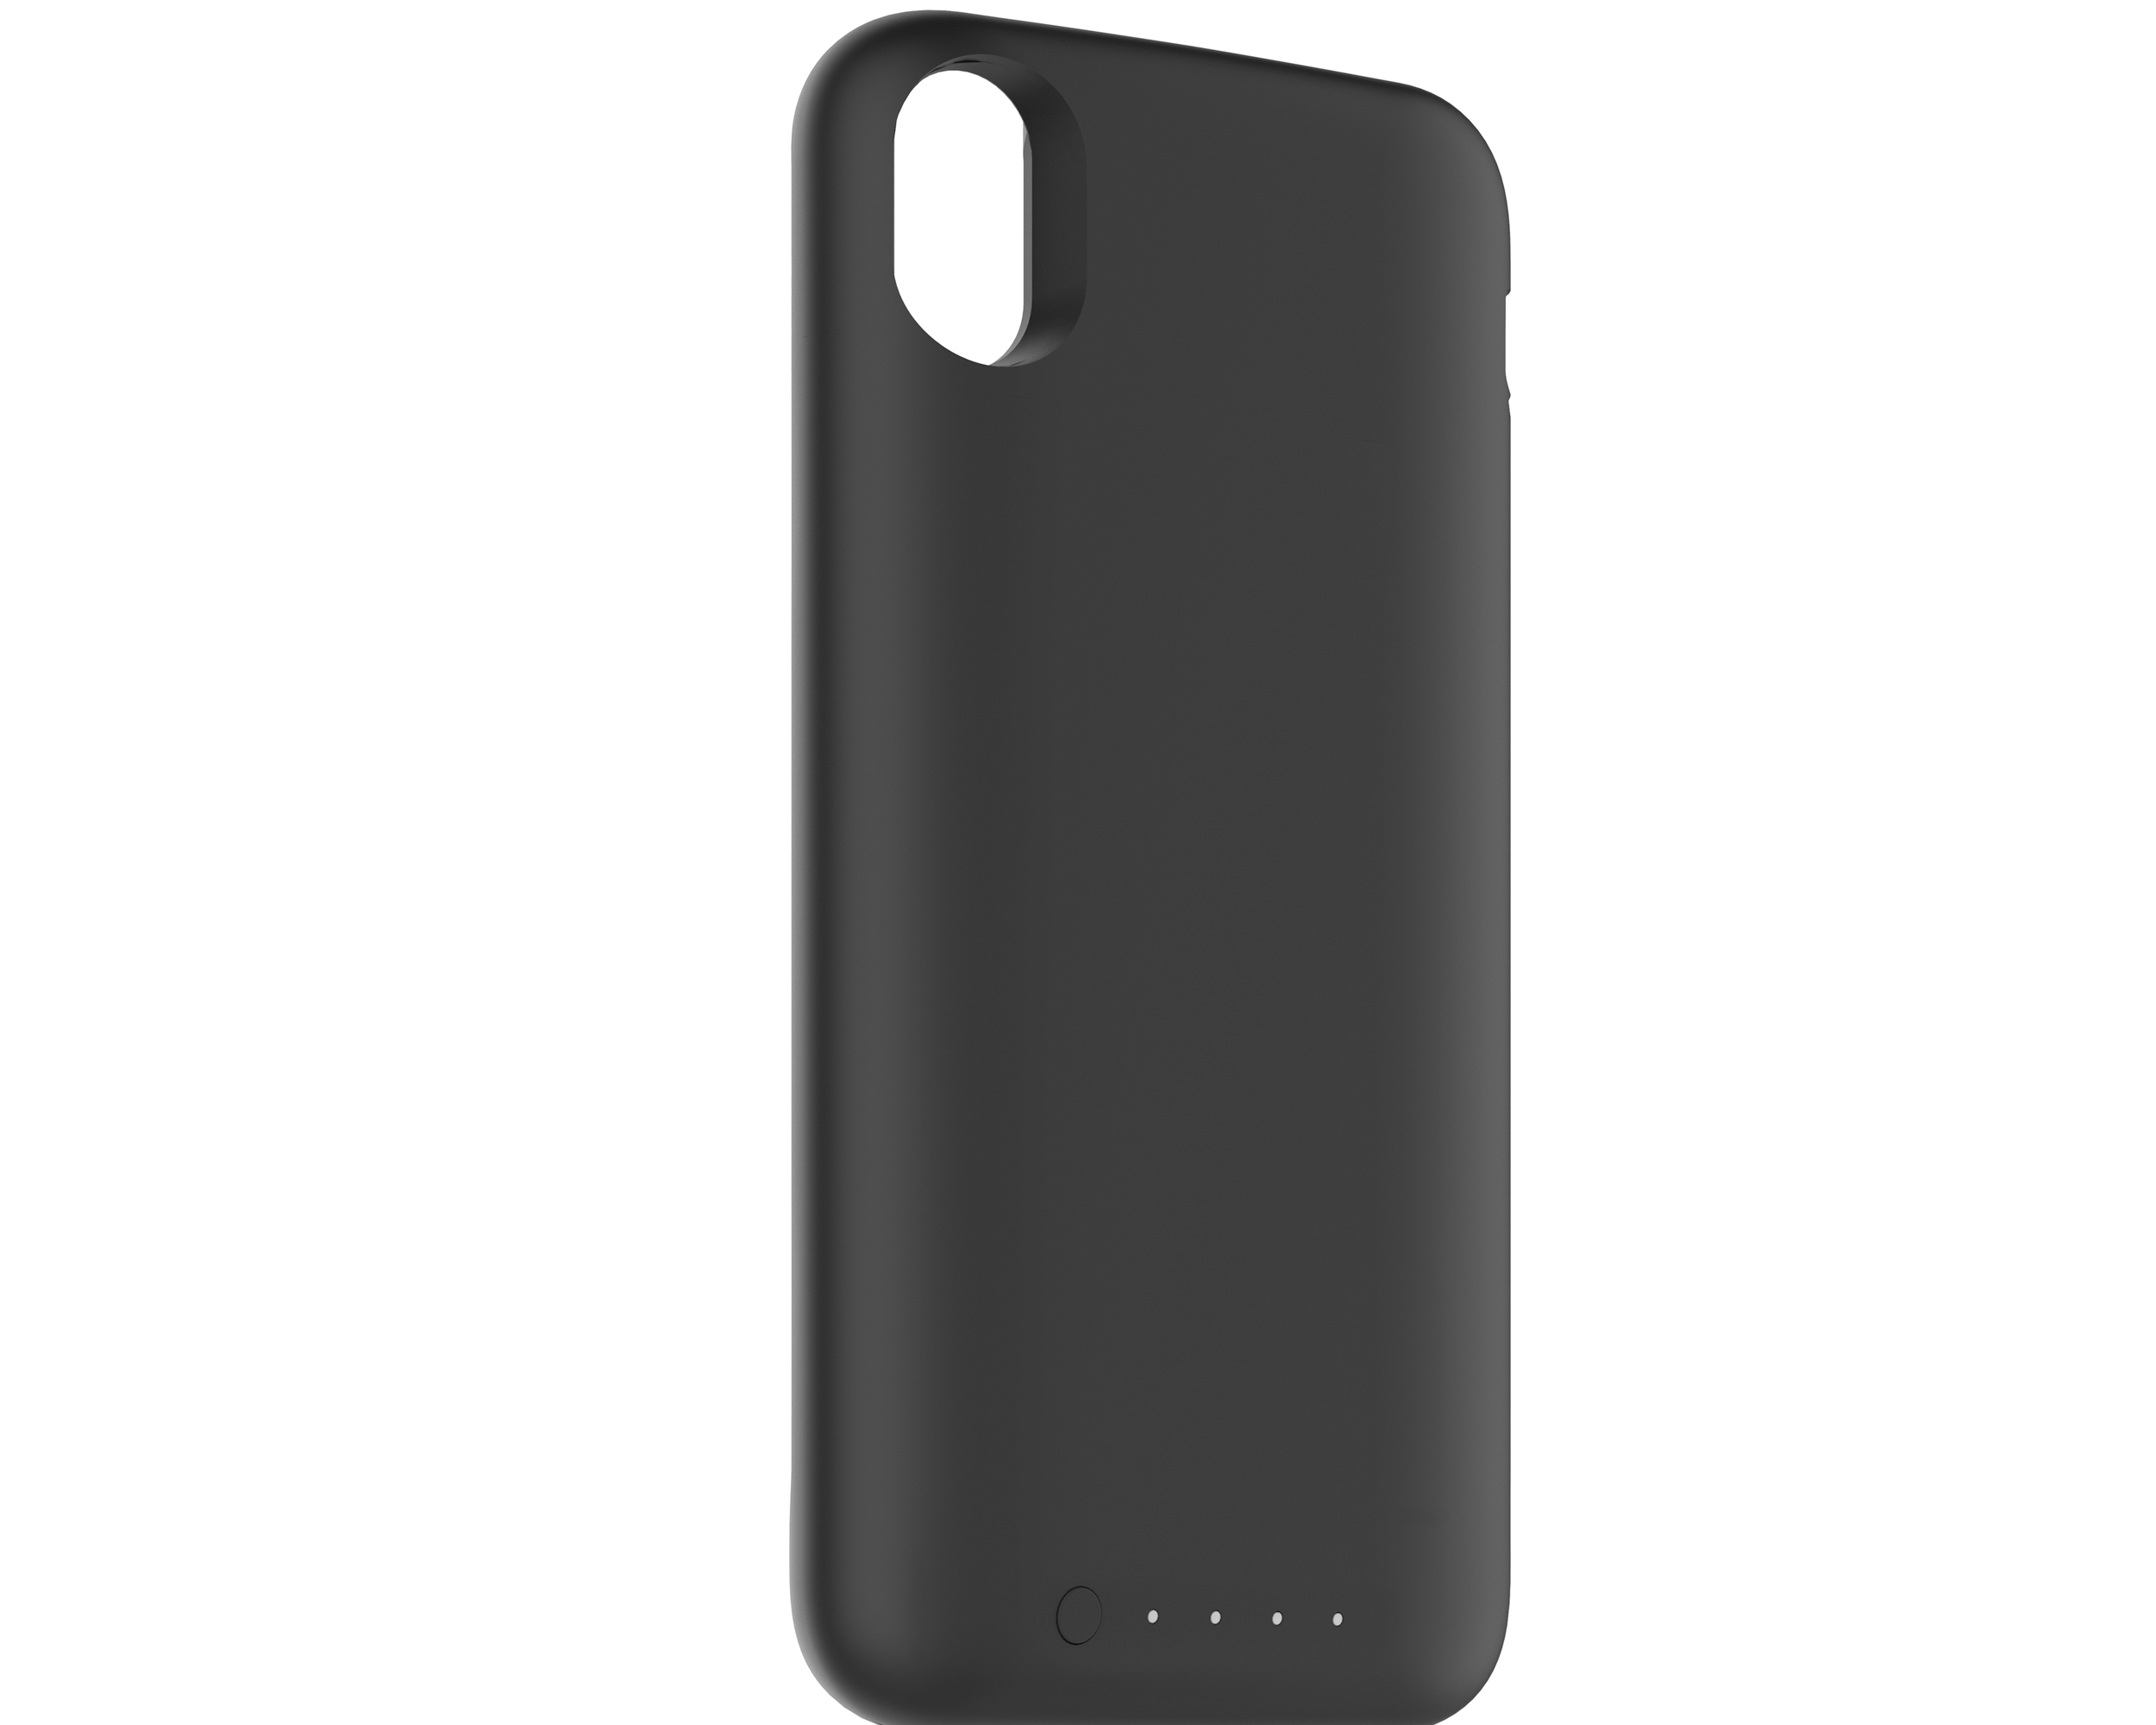 A Qi Certified Mophie Juice Pack Air For Iphone X Should Be Coming Soon The mophie juice pack access extended the battery life on my phone and protected the screen when i accidentally dropped it. a qi certified mophie juice pack air for iphone x should be coming soon